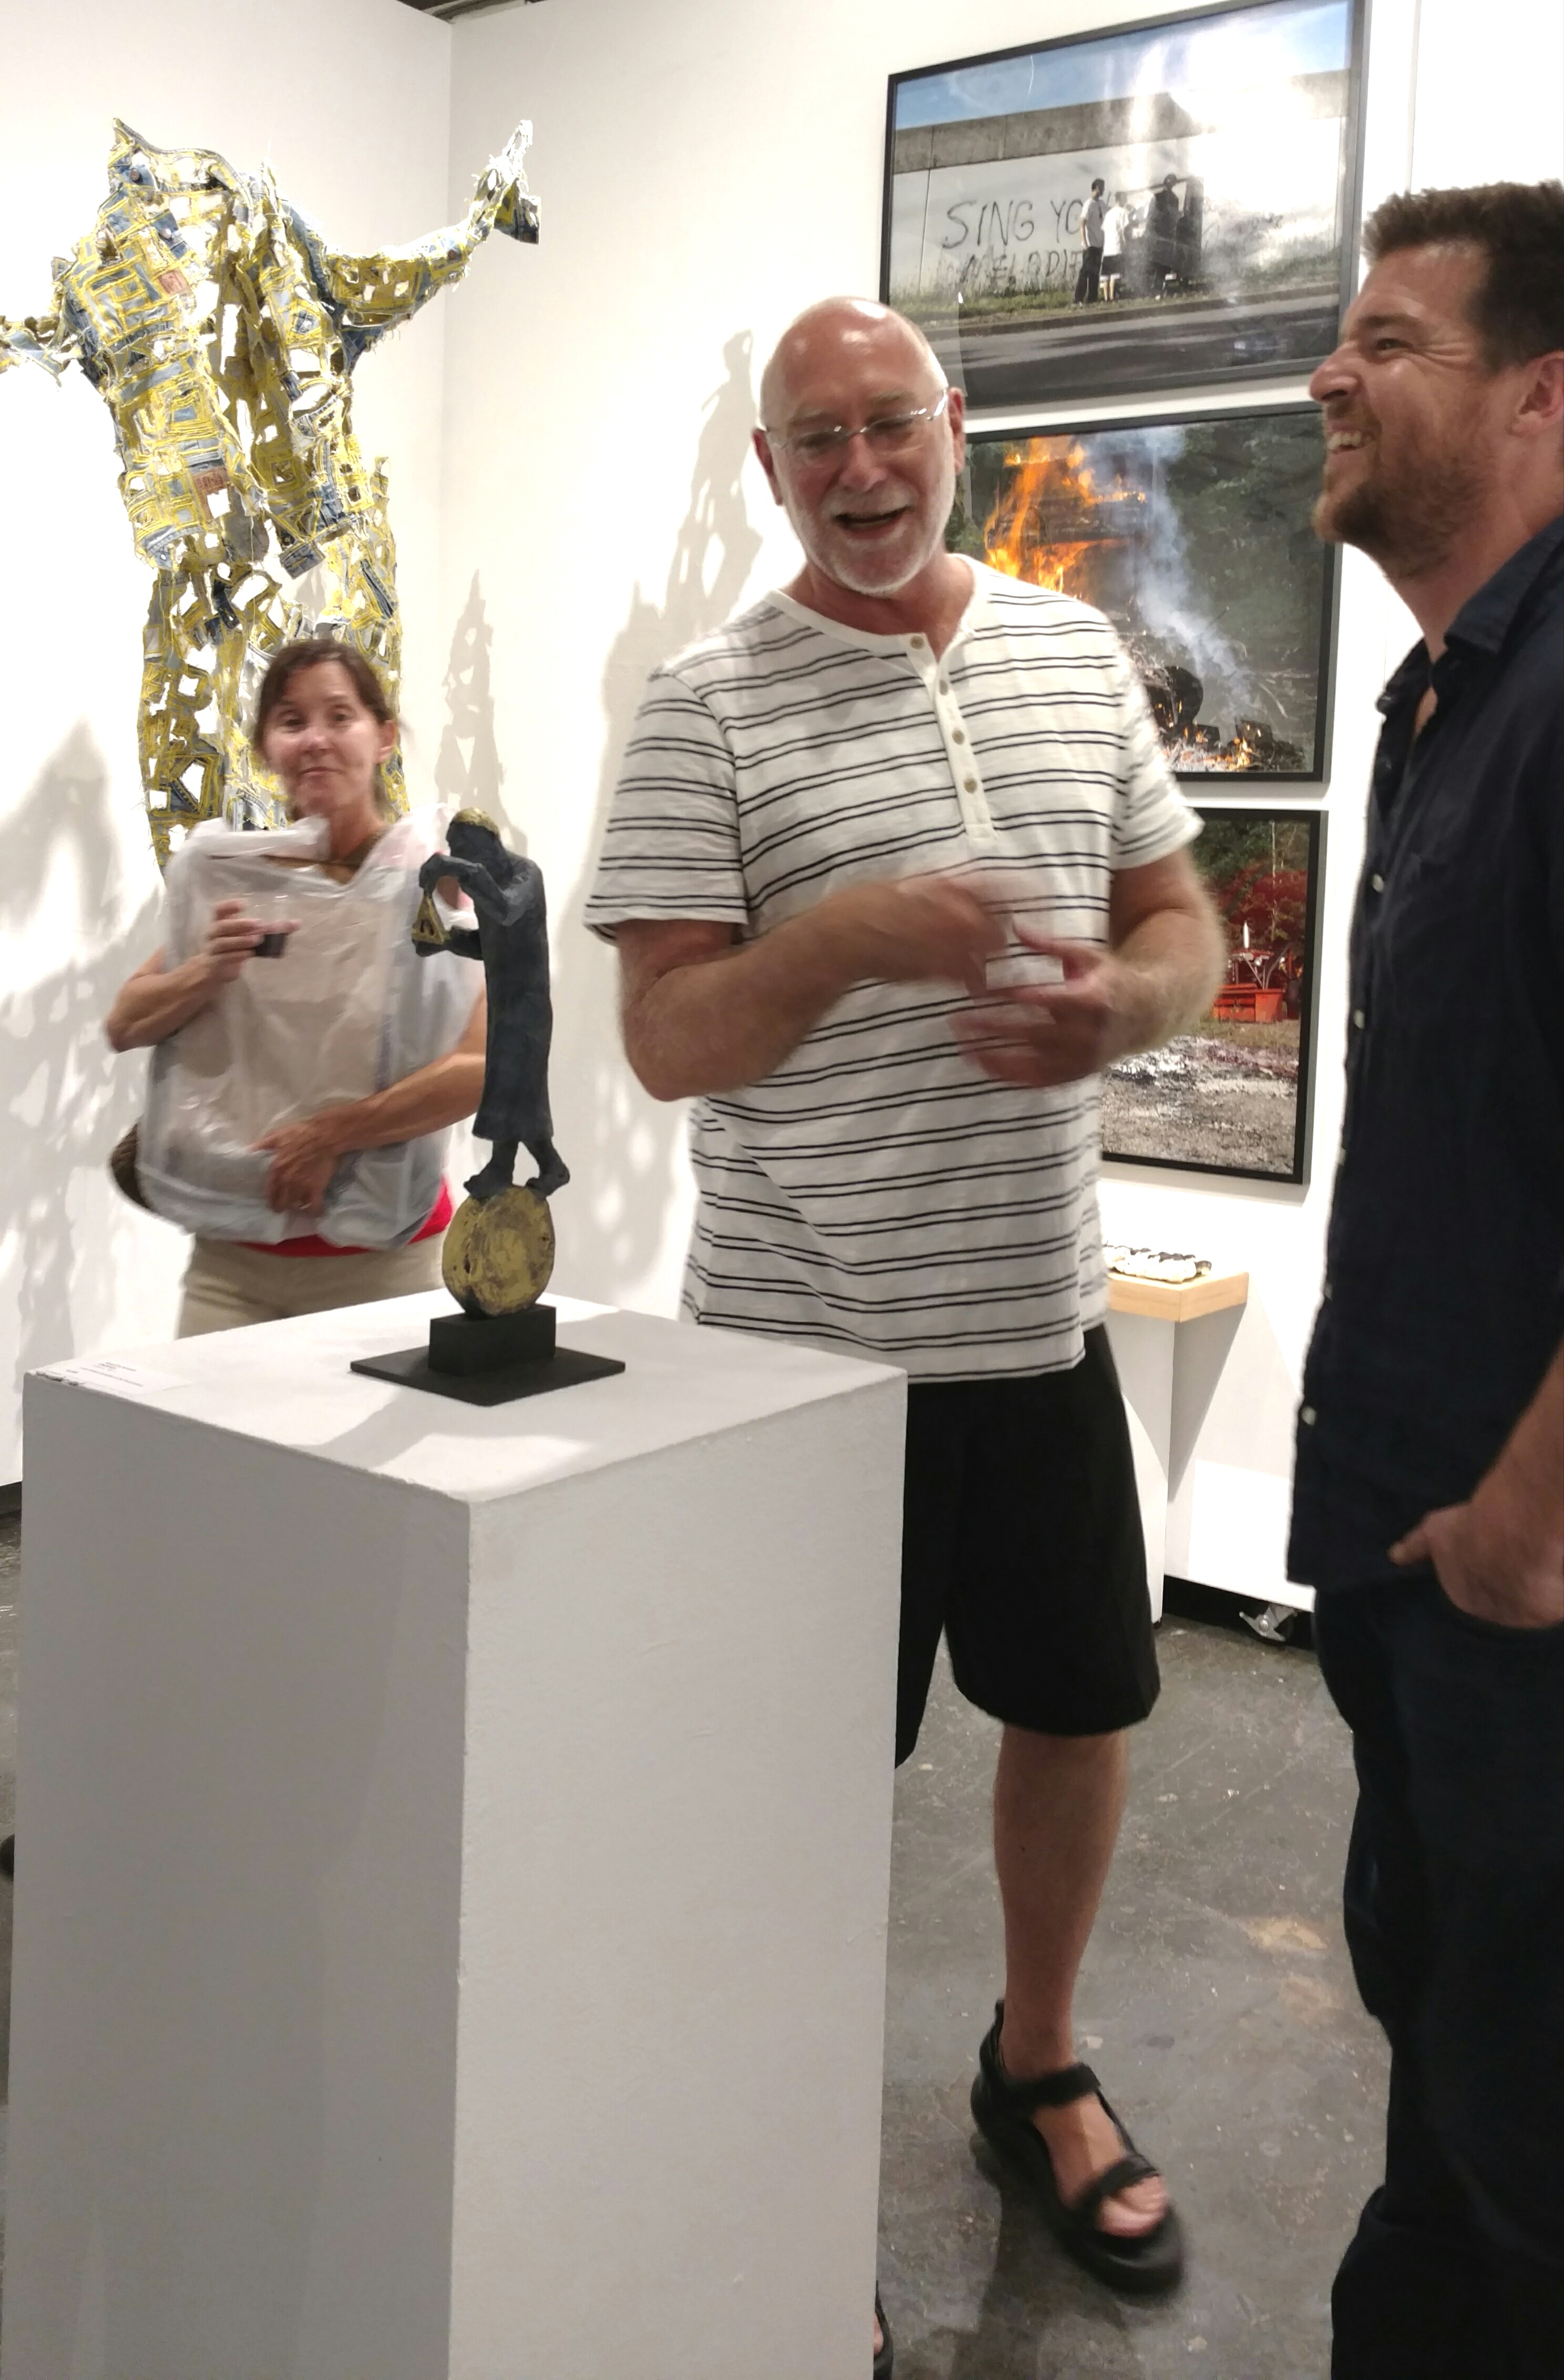 Paradox Art Show Spark Gallery Denver August 2017 Belgin Yucelen sculpture 4